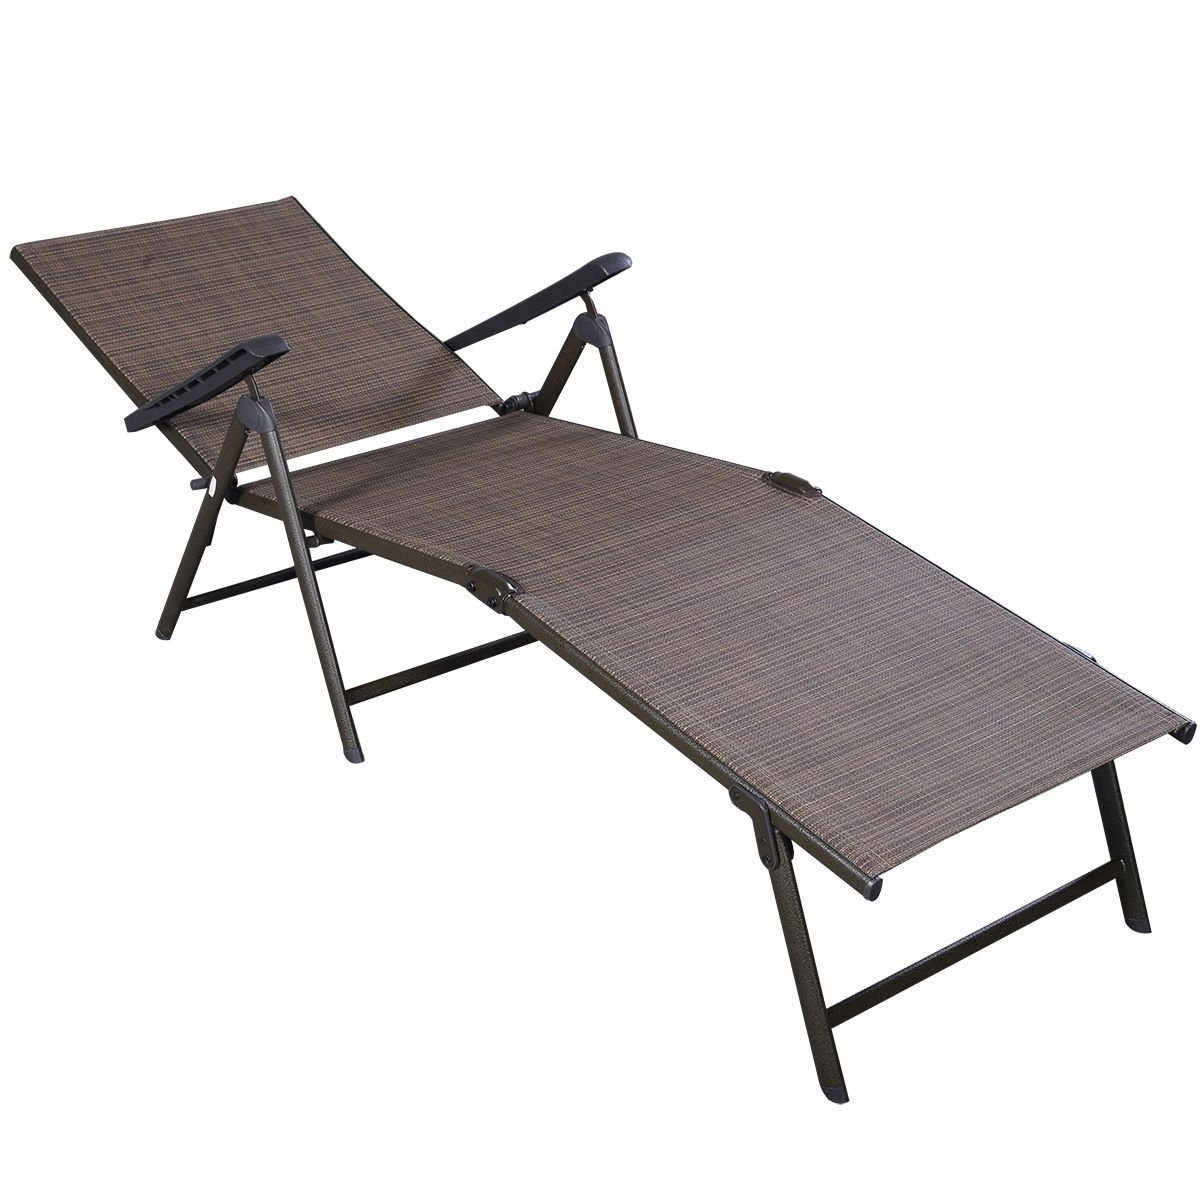 Lounge Chair : Outdoor Setting Sale Cheap Lounge Chairs Pool Inside Most Popular Outdoor Chaise Lounge Chairs Under $ (View 11 of 15)